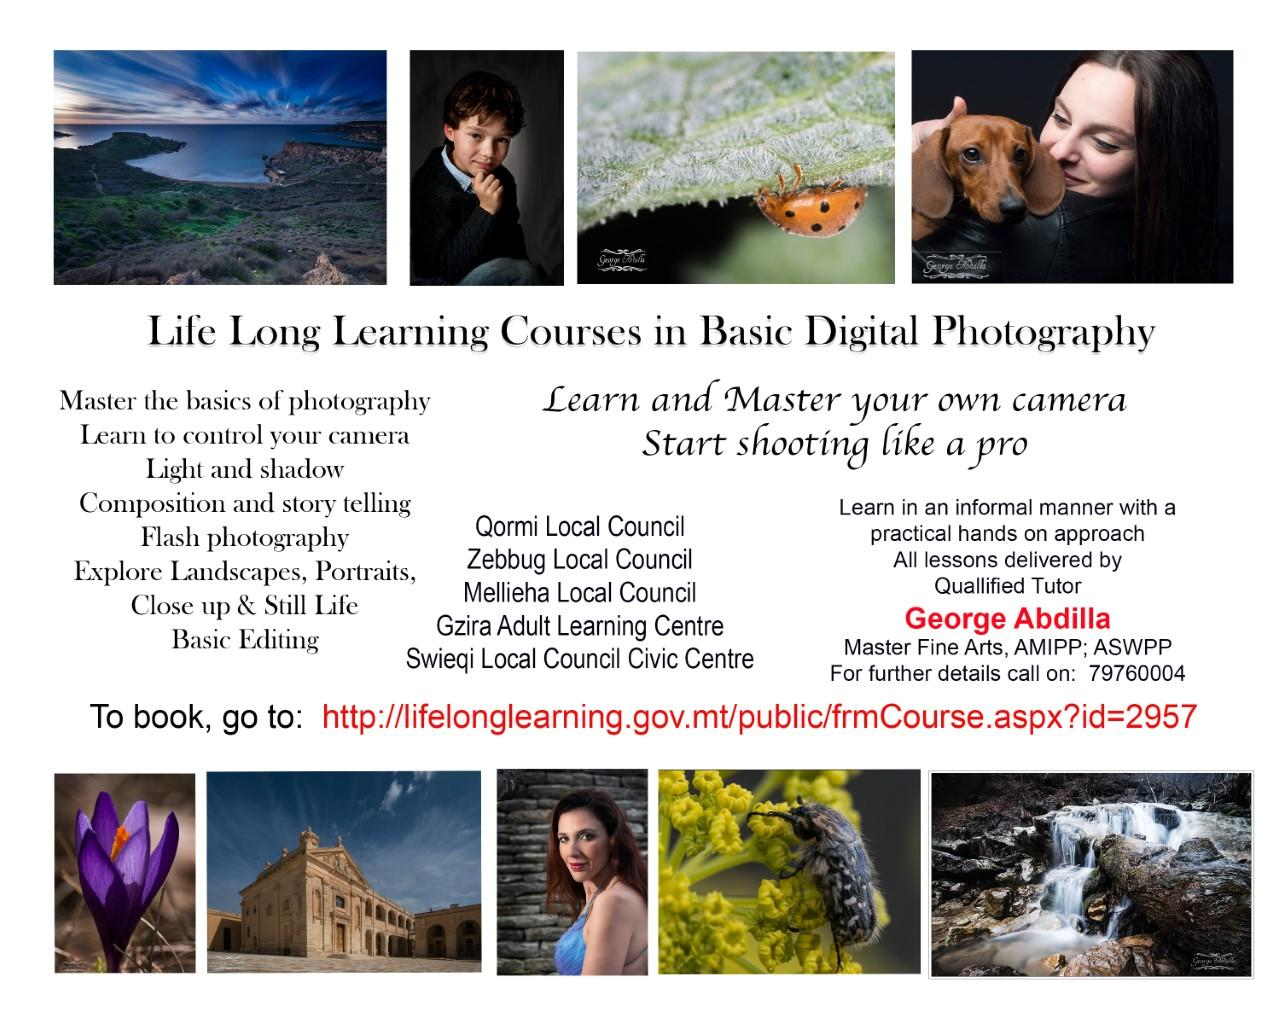 Life Long Learning Courses in Basic Digital Photography